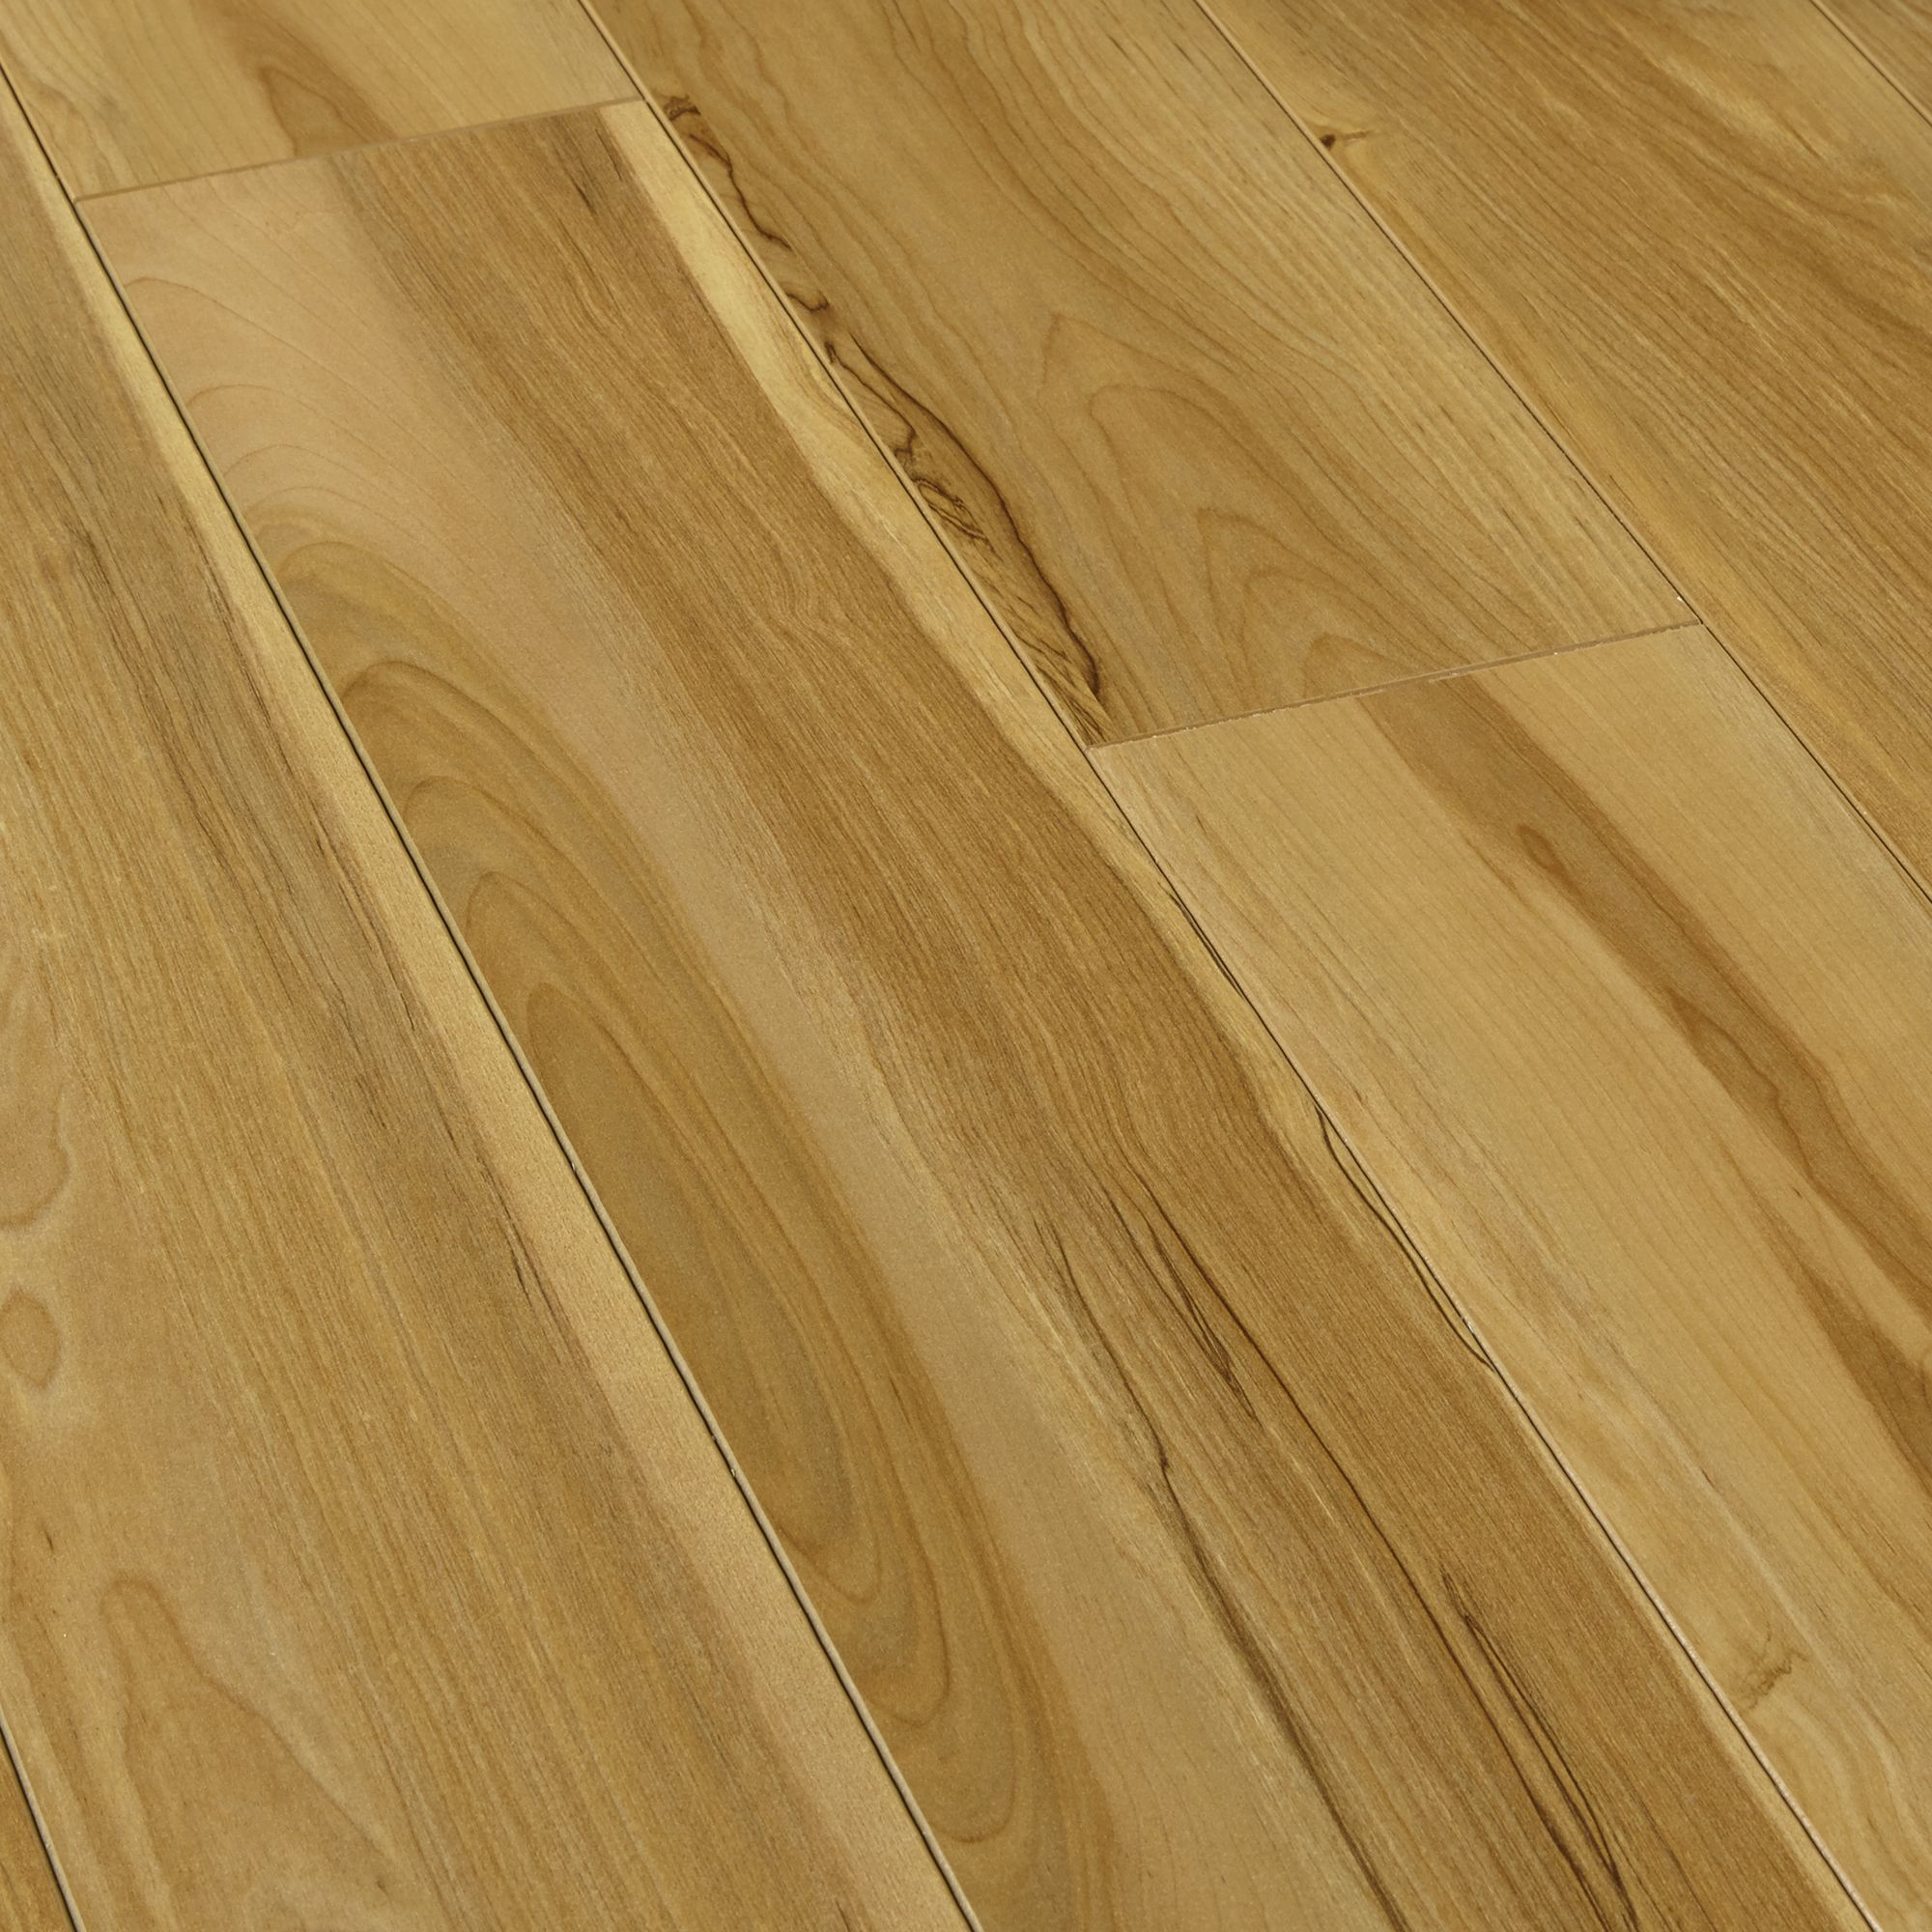 Scherzo laminate flooring thefloors co for Laminate flooring company